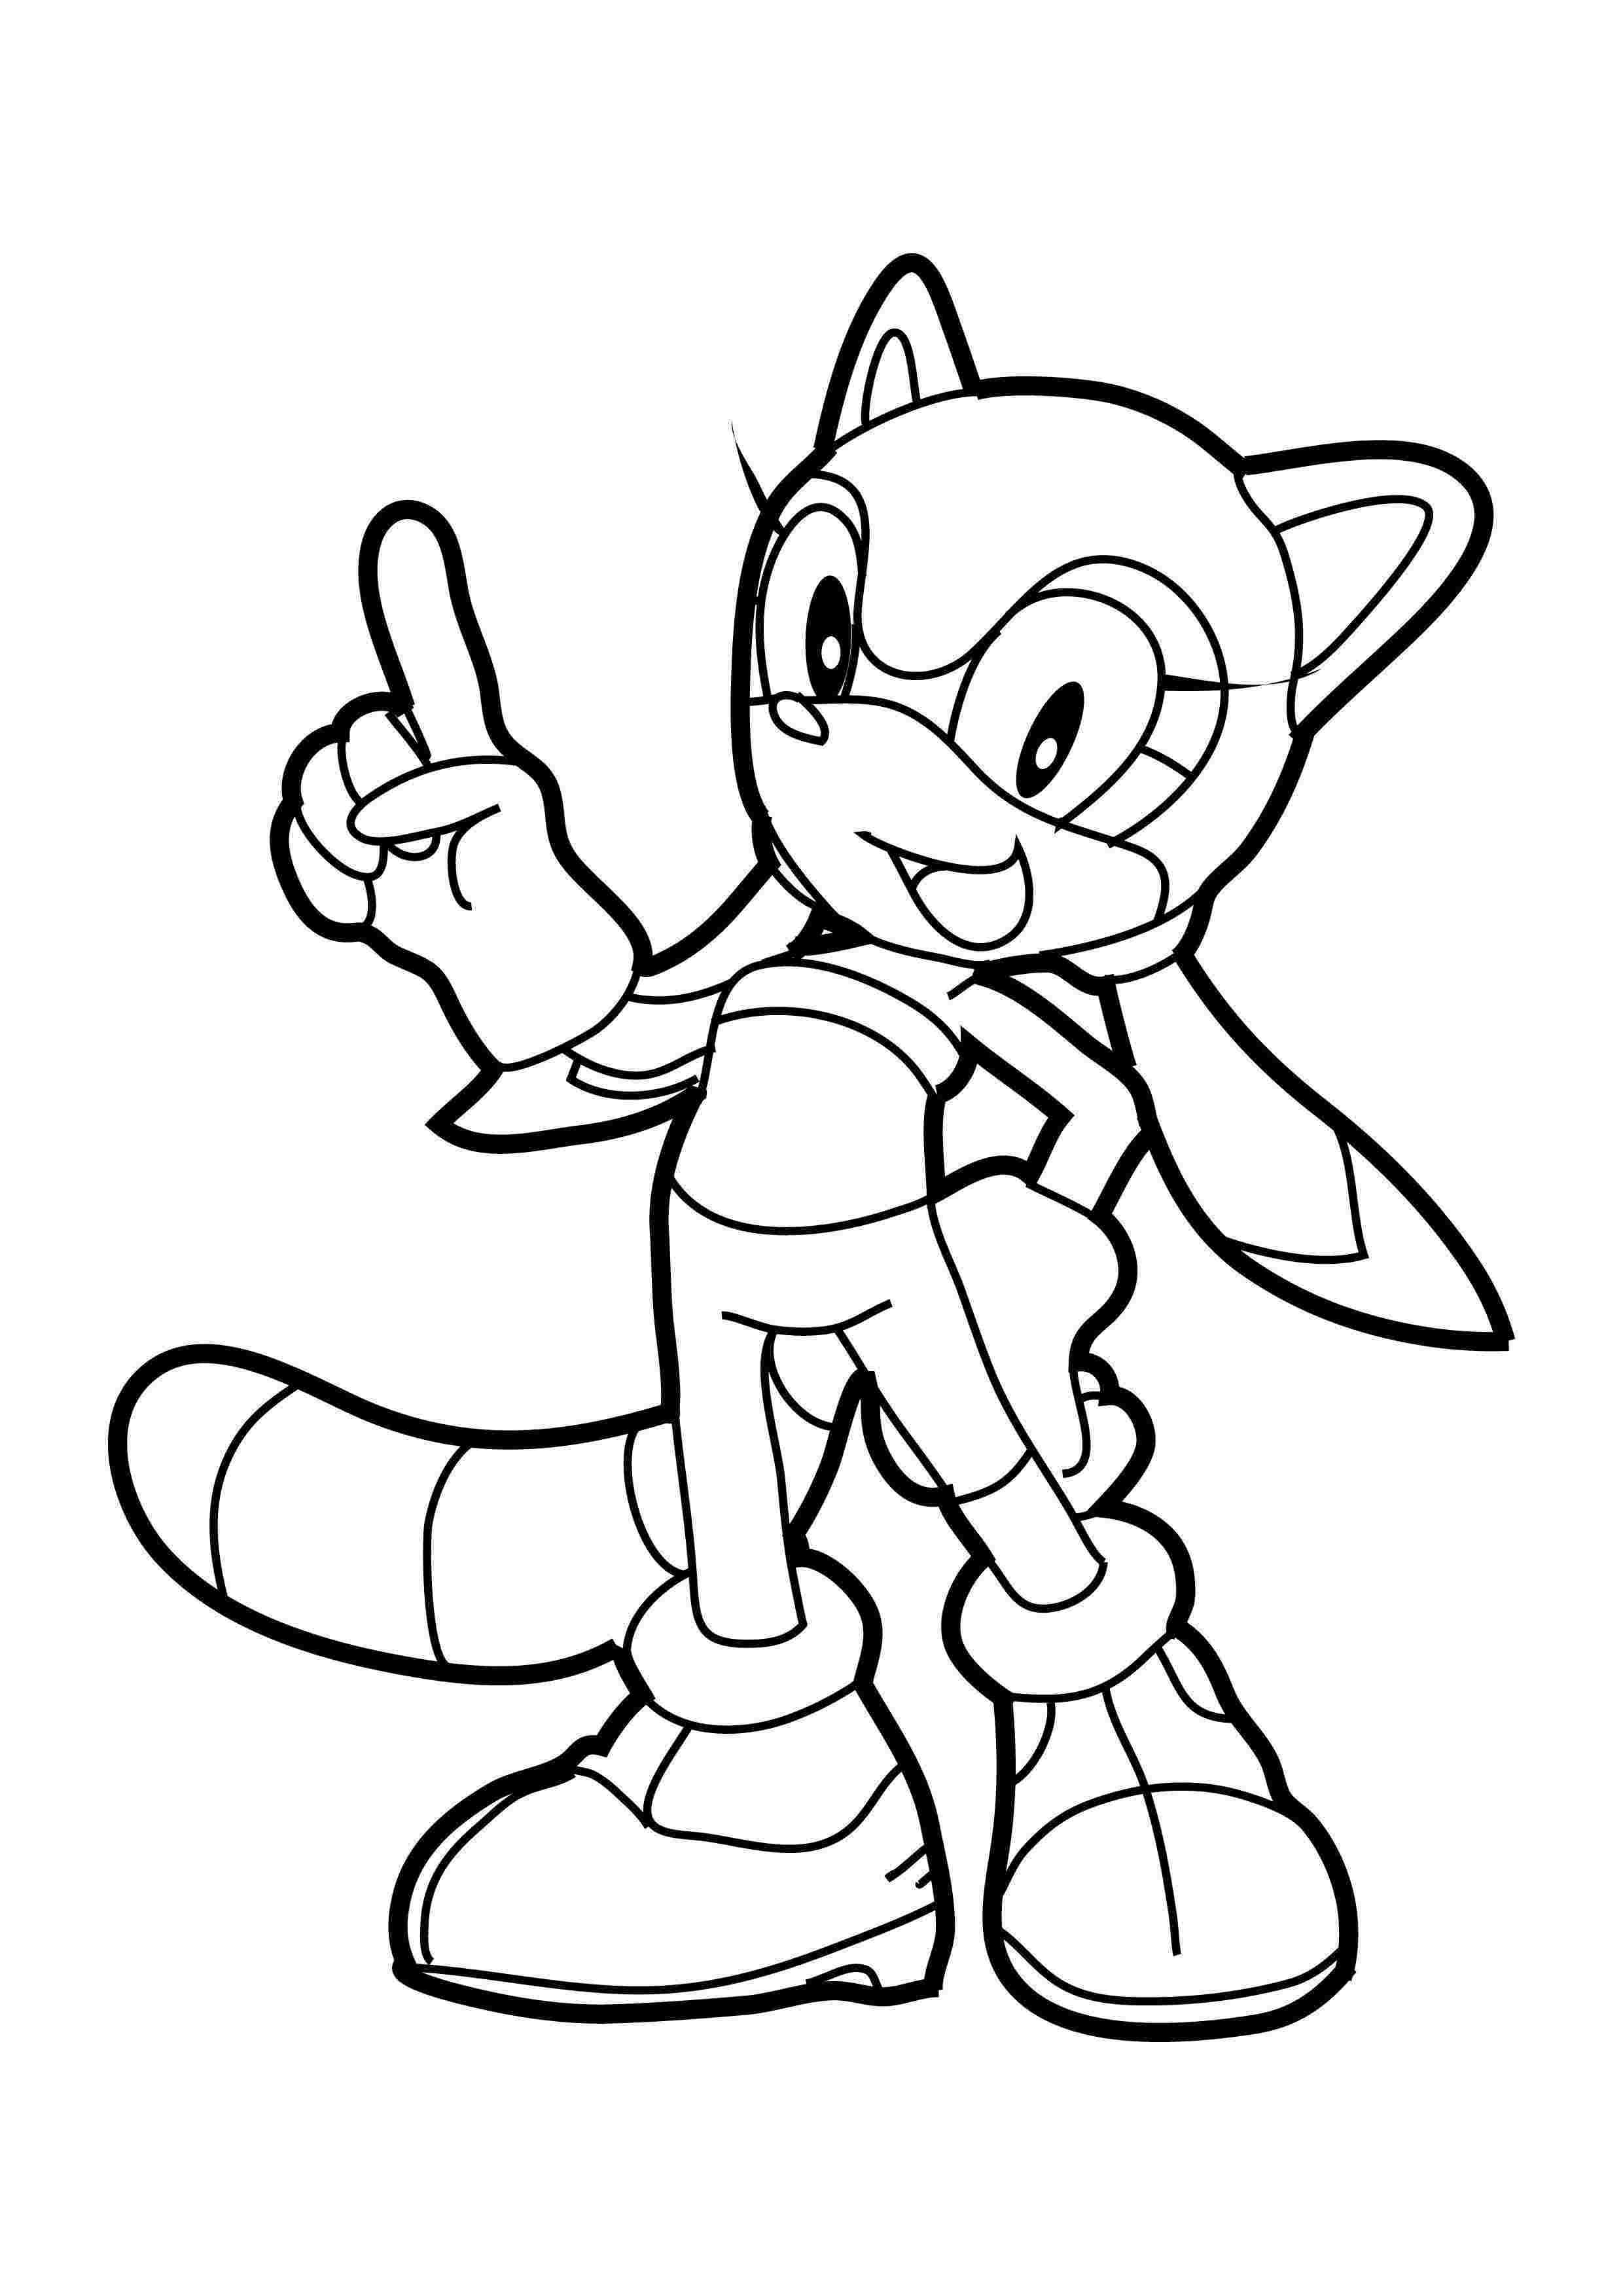 Classic Super Sonic Coloring Pages Hedgehog Colors Cartoon Coloring Pages Animal Coloring Pages